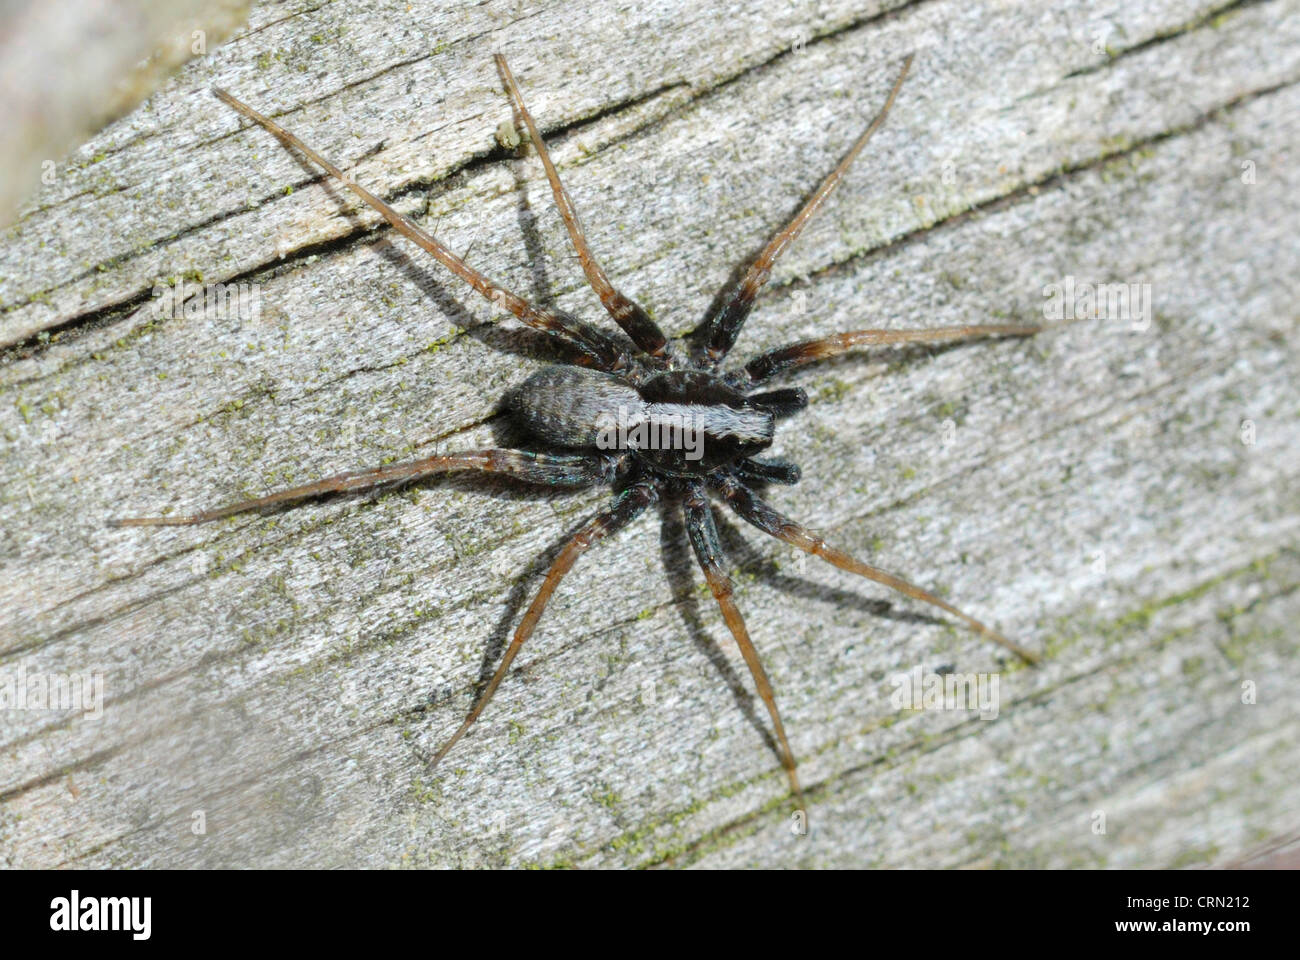 Male Dancing Wolf Spider (Pardosa saltans) on a Surrey heath - Stock Image